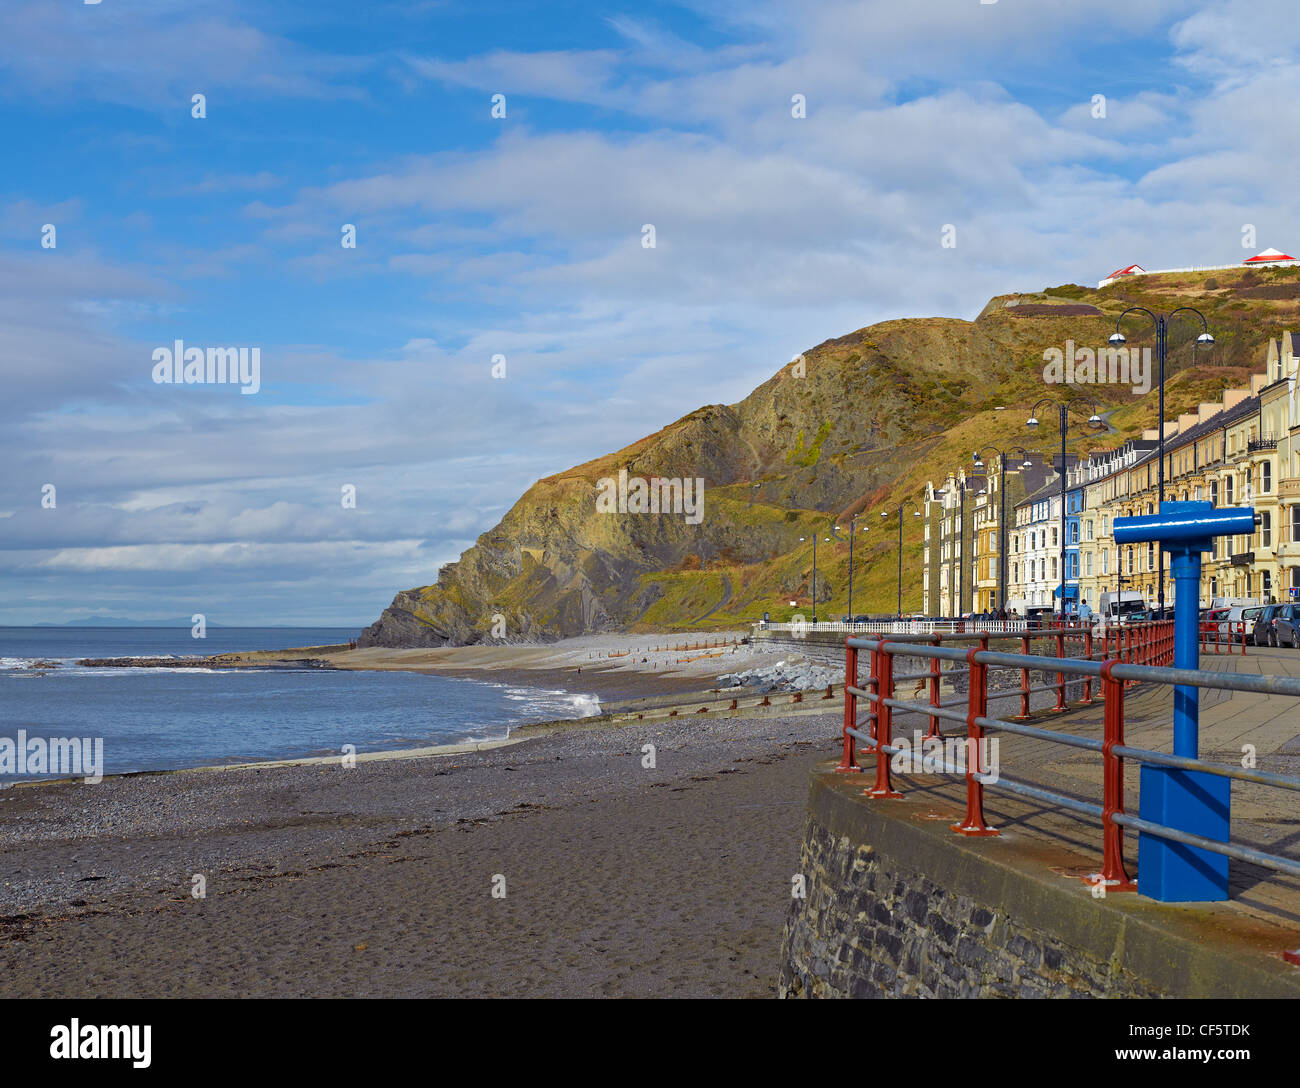 North Beach and Marine Terrace in Aberystwyth by the Irish Sea. - Stock Image